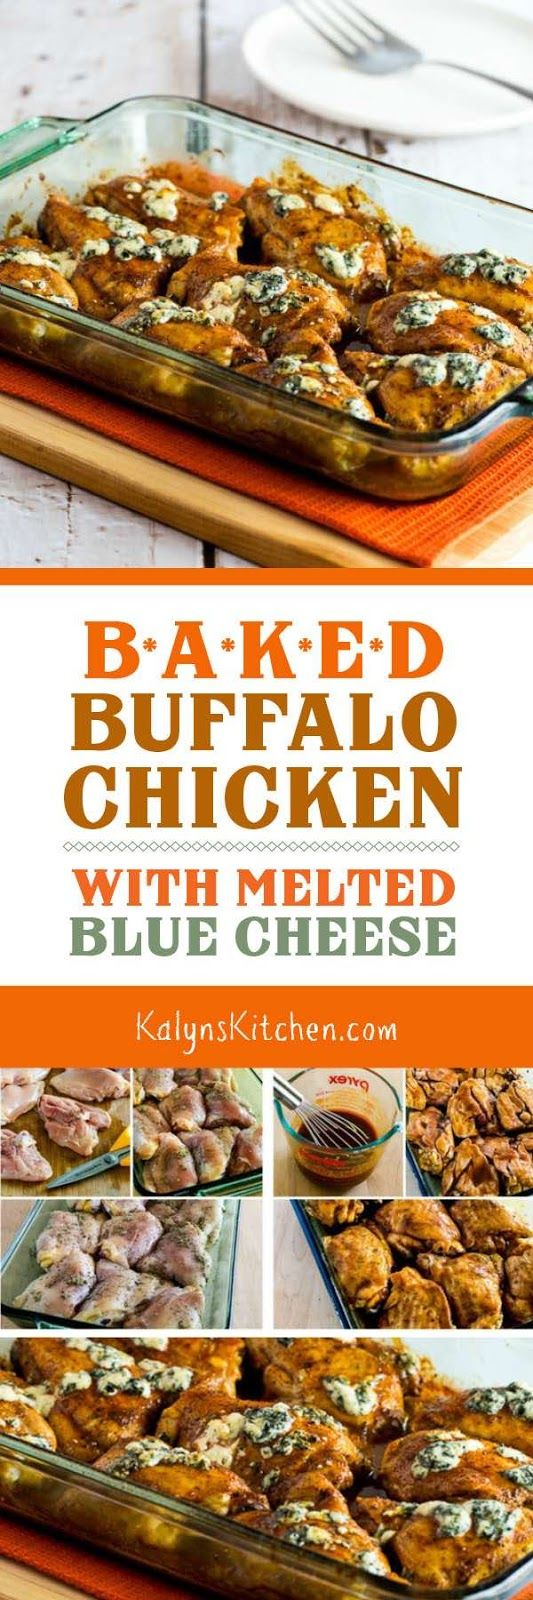 Baked Buffalo Chicken with Melted Blue Cheese is a delicious dinner that's low-carb and gluten-free. If you like Buffalo Wings, you'll love this recipe! [ found on KalynsKitchen.com]: